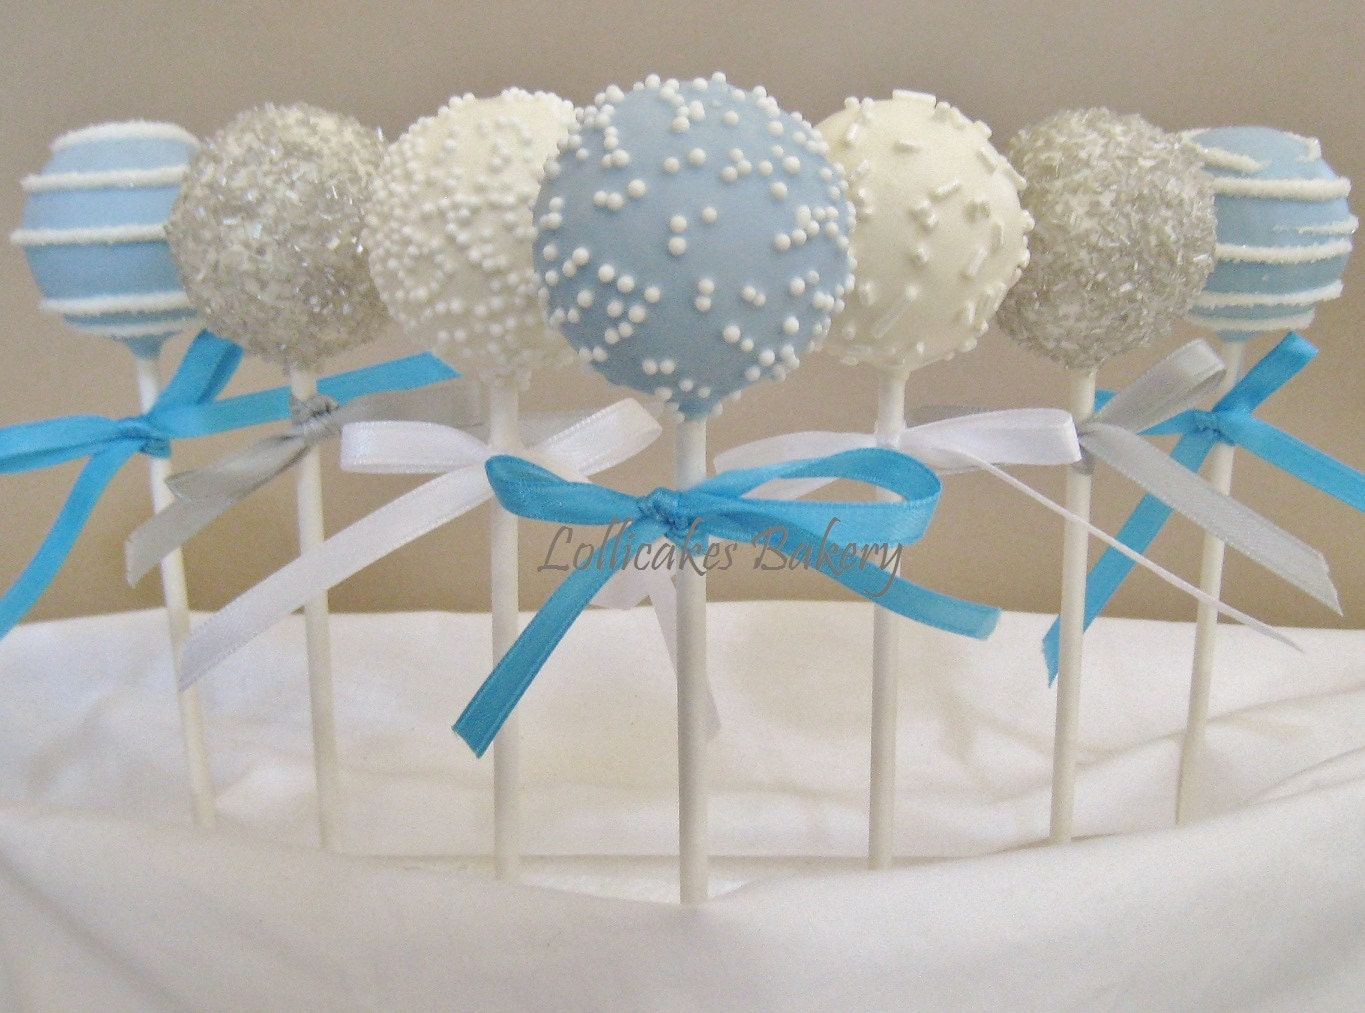 Cake Pops Winter Onederland Birthday Cake Pops Made to Order